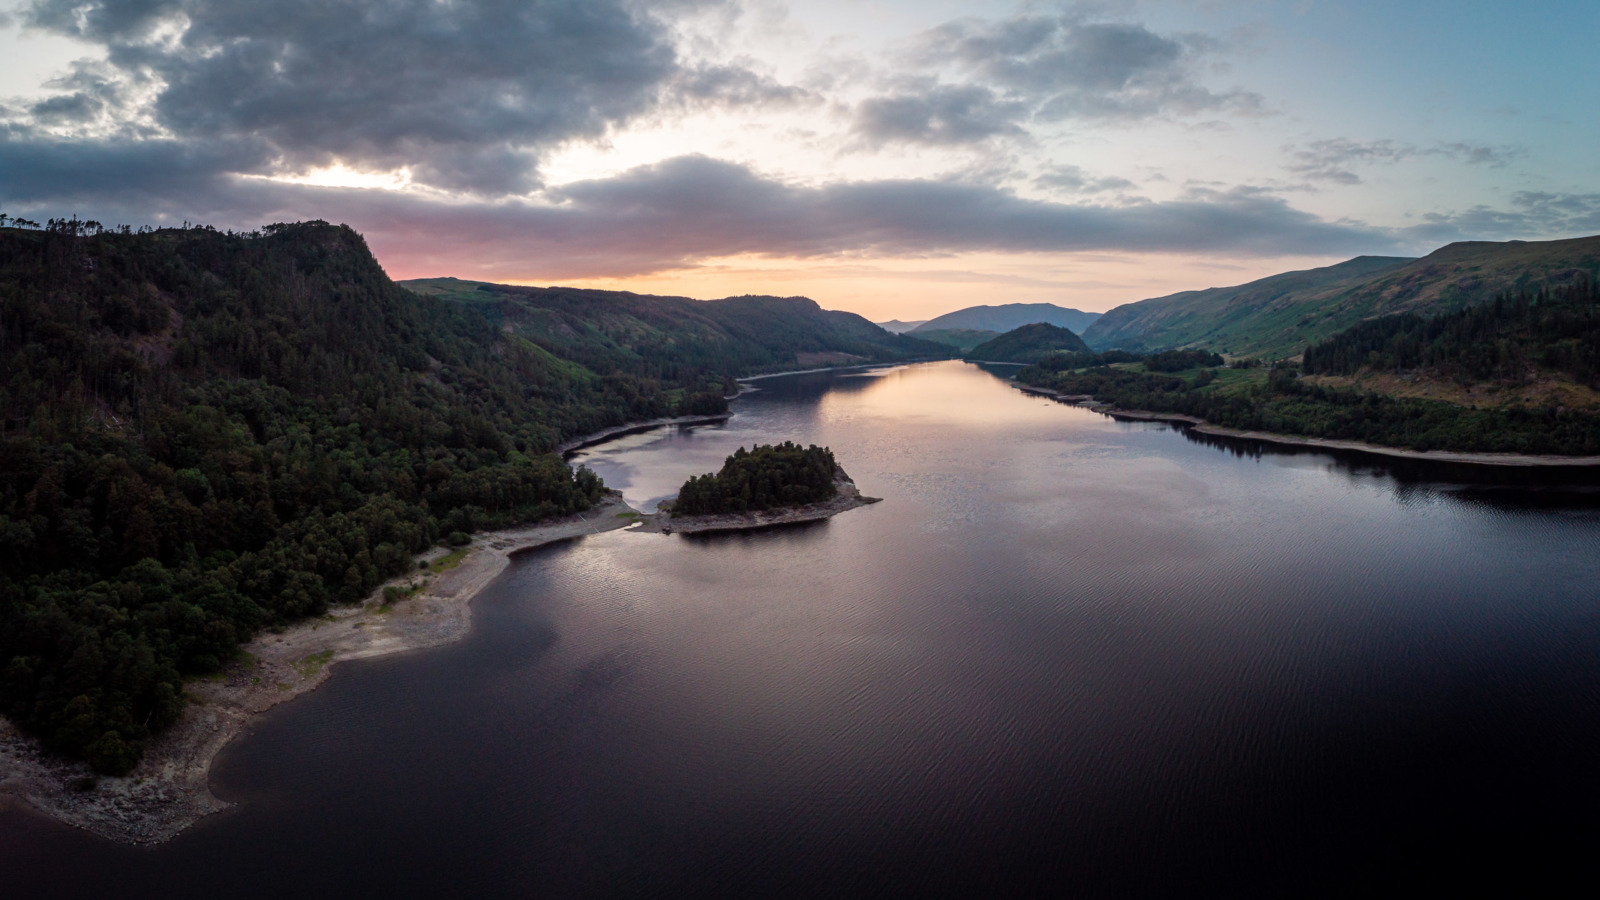 Aerial photograph of Thirlmere, in Cumbria, at sunset